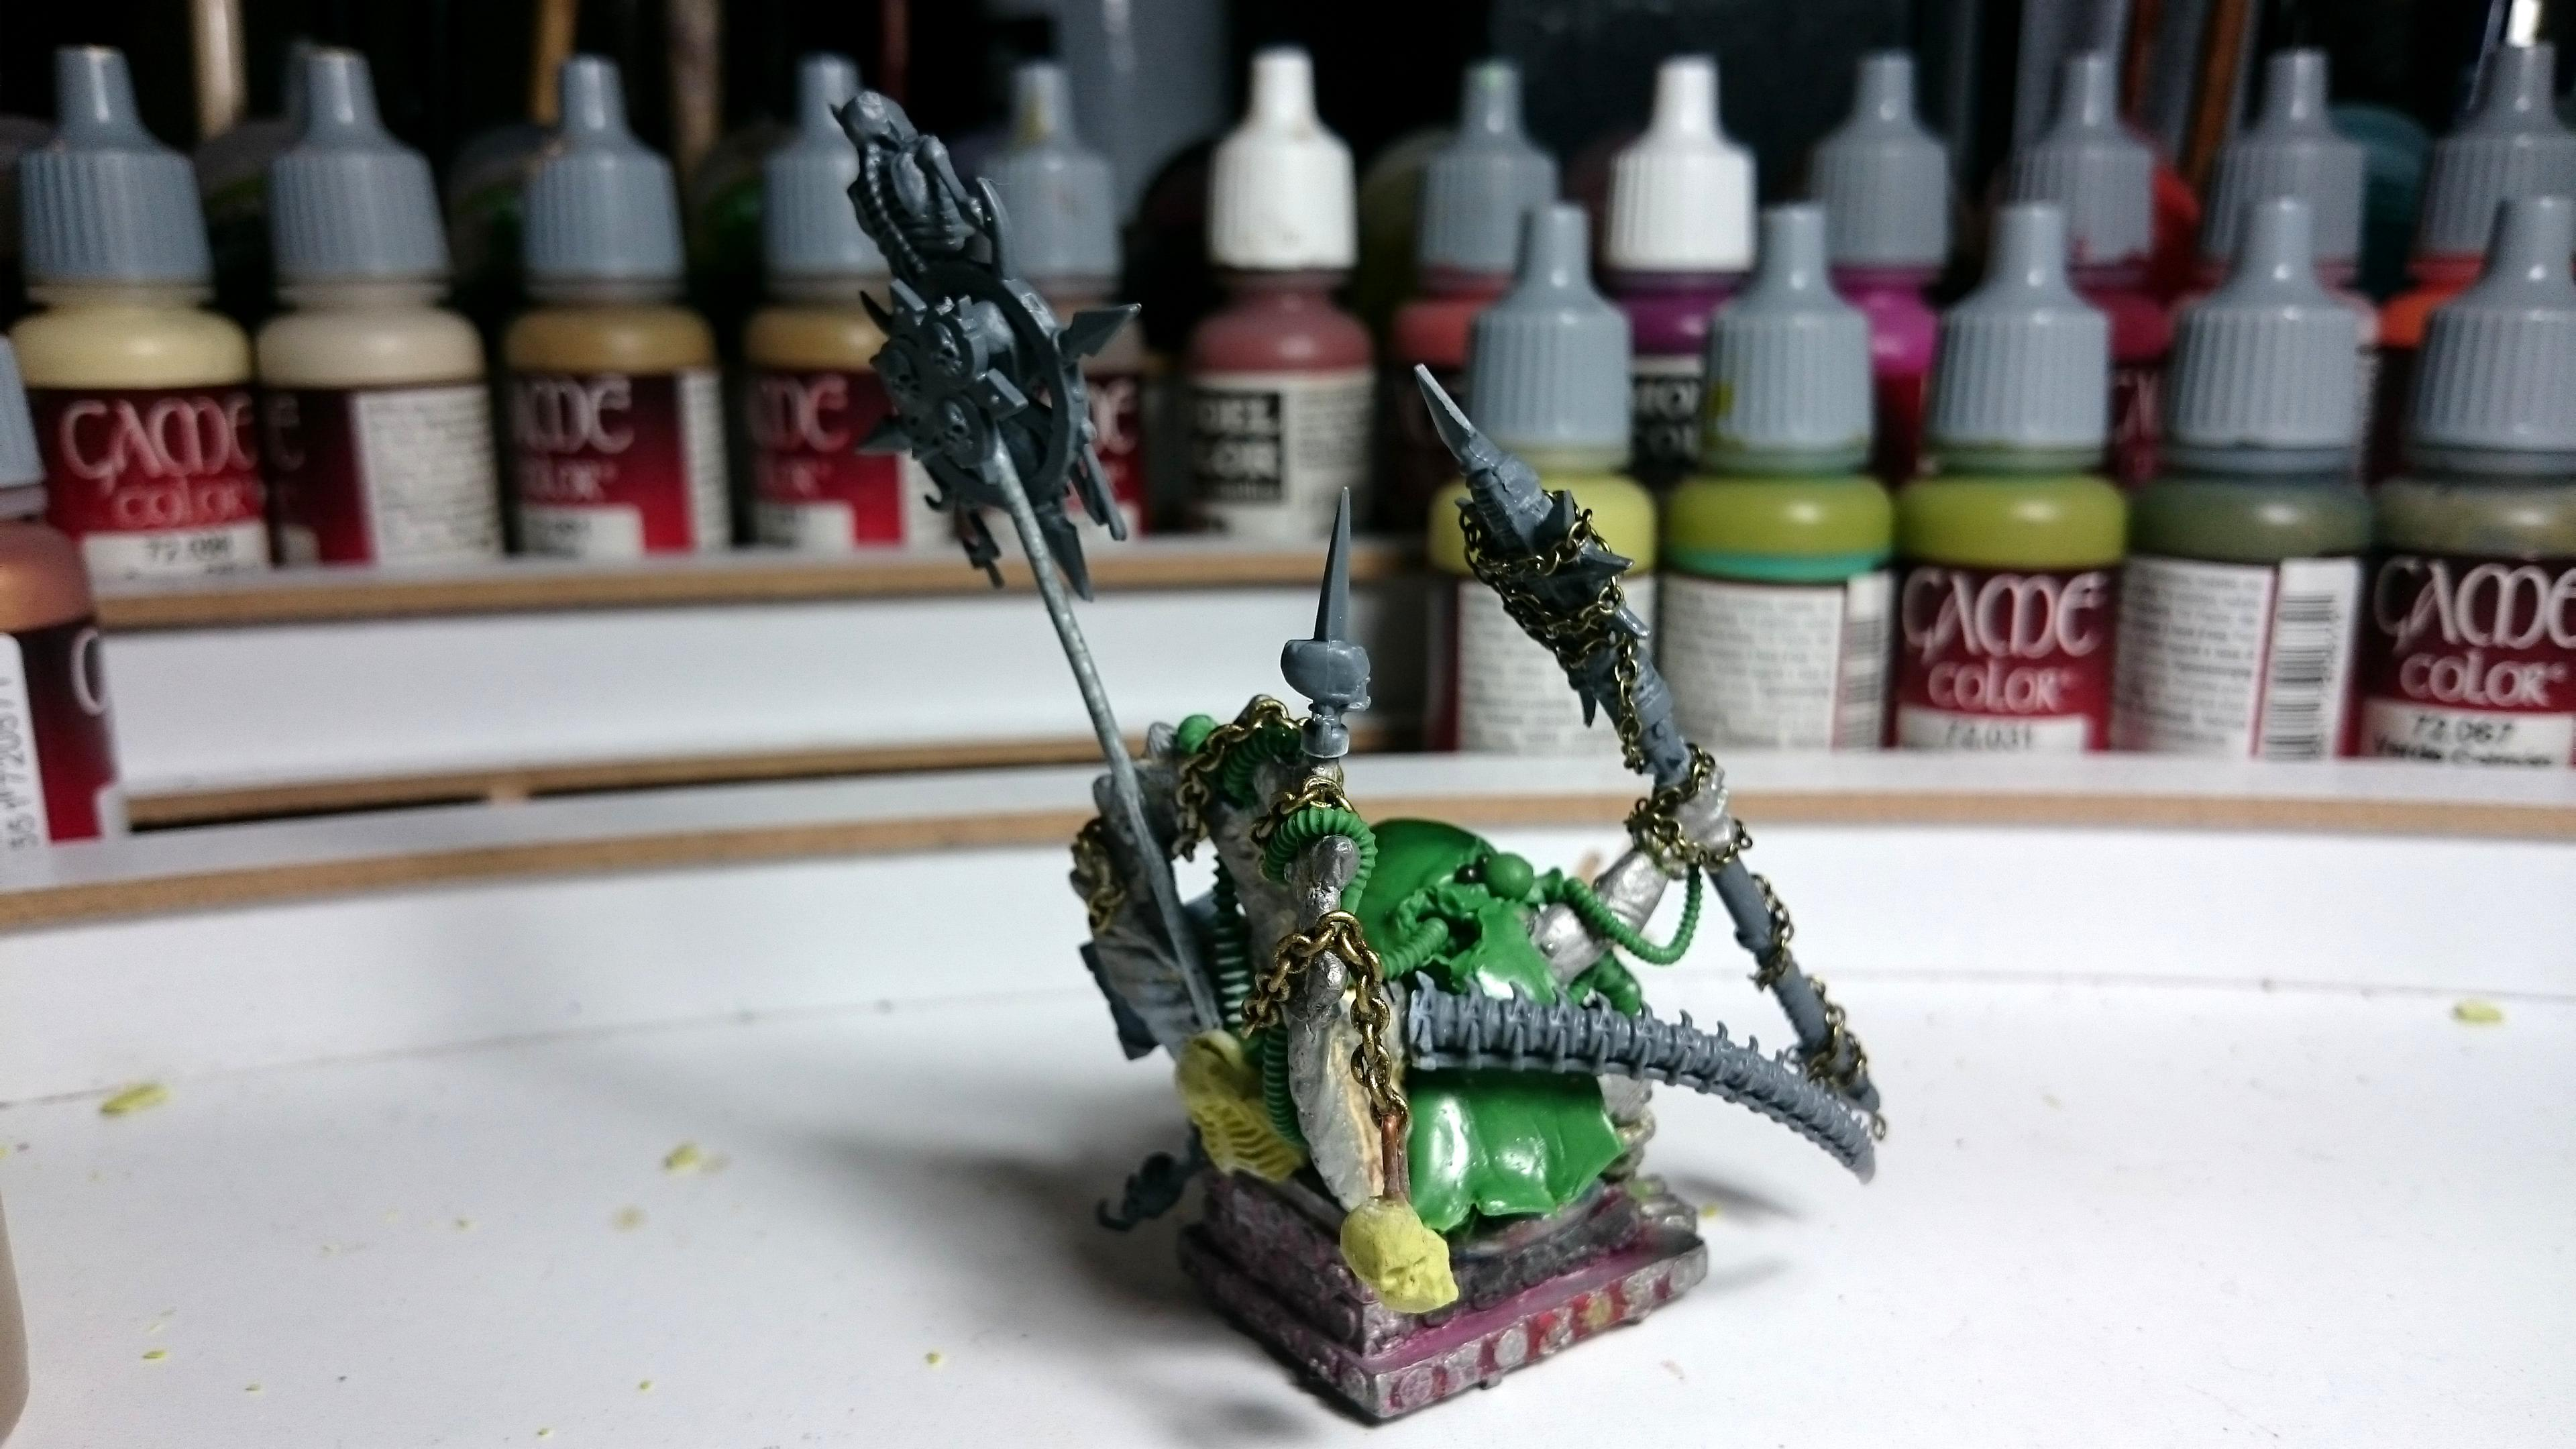 Chaos, Chaos Space Marines, Daemons, Nurgle, Plague, Prince, Space, Space Marines, Warhammer 40,000, Warhammer Fantasy, Wh40